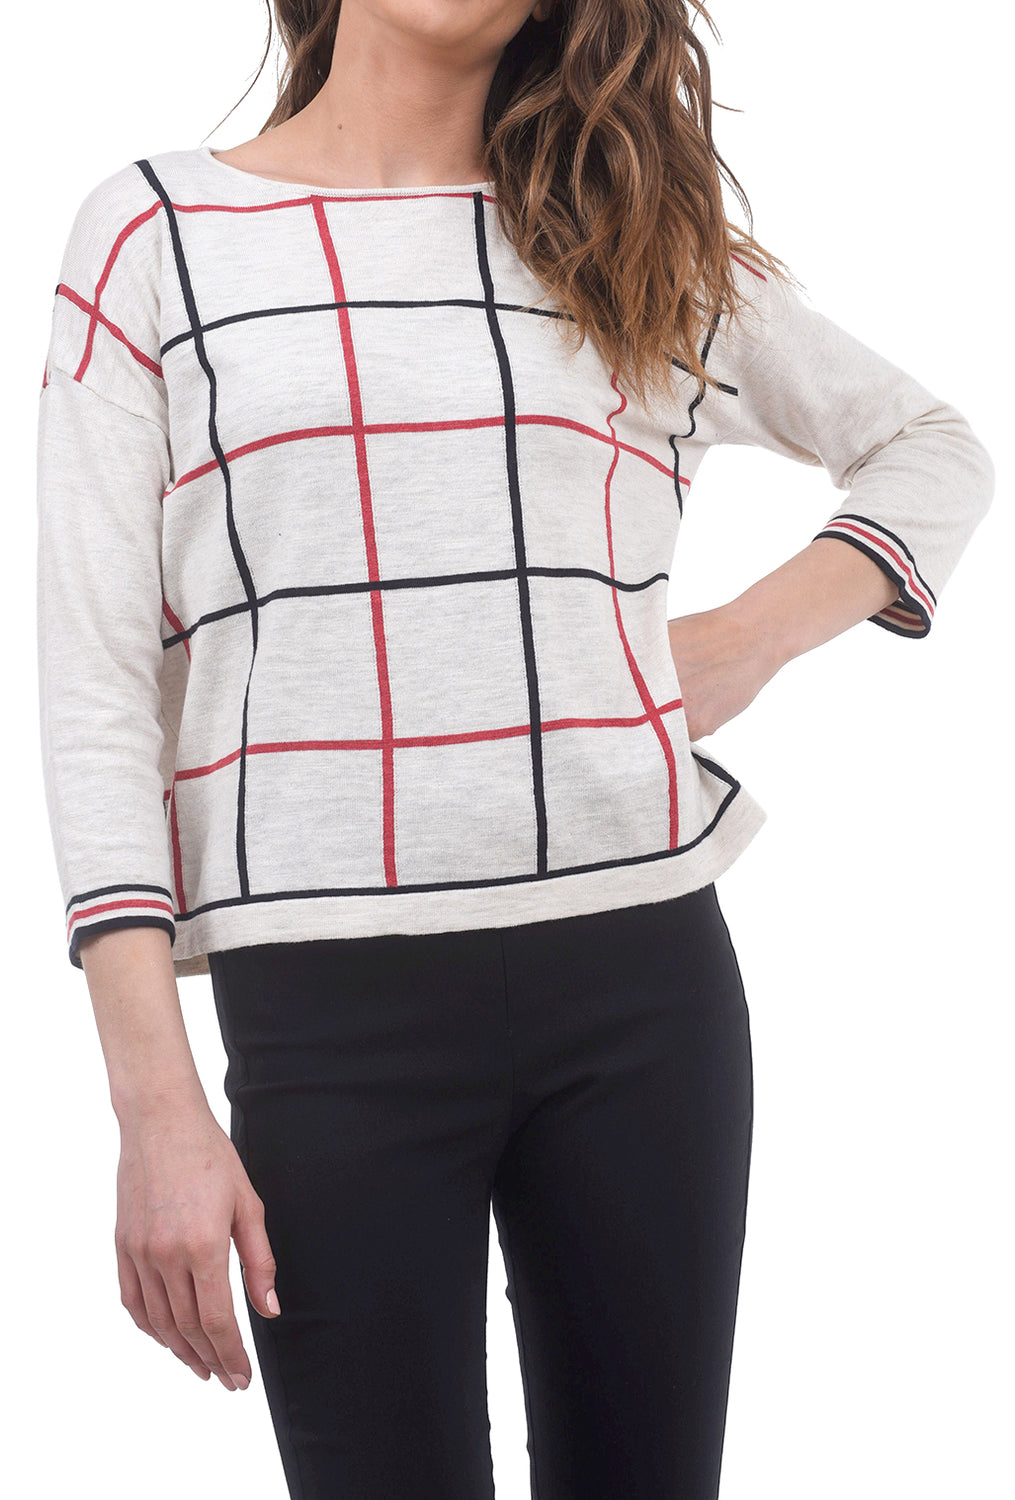 Two Danes Cotton Grid Karina Sweater, Cream